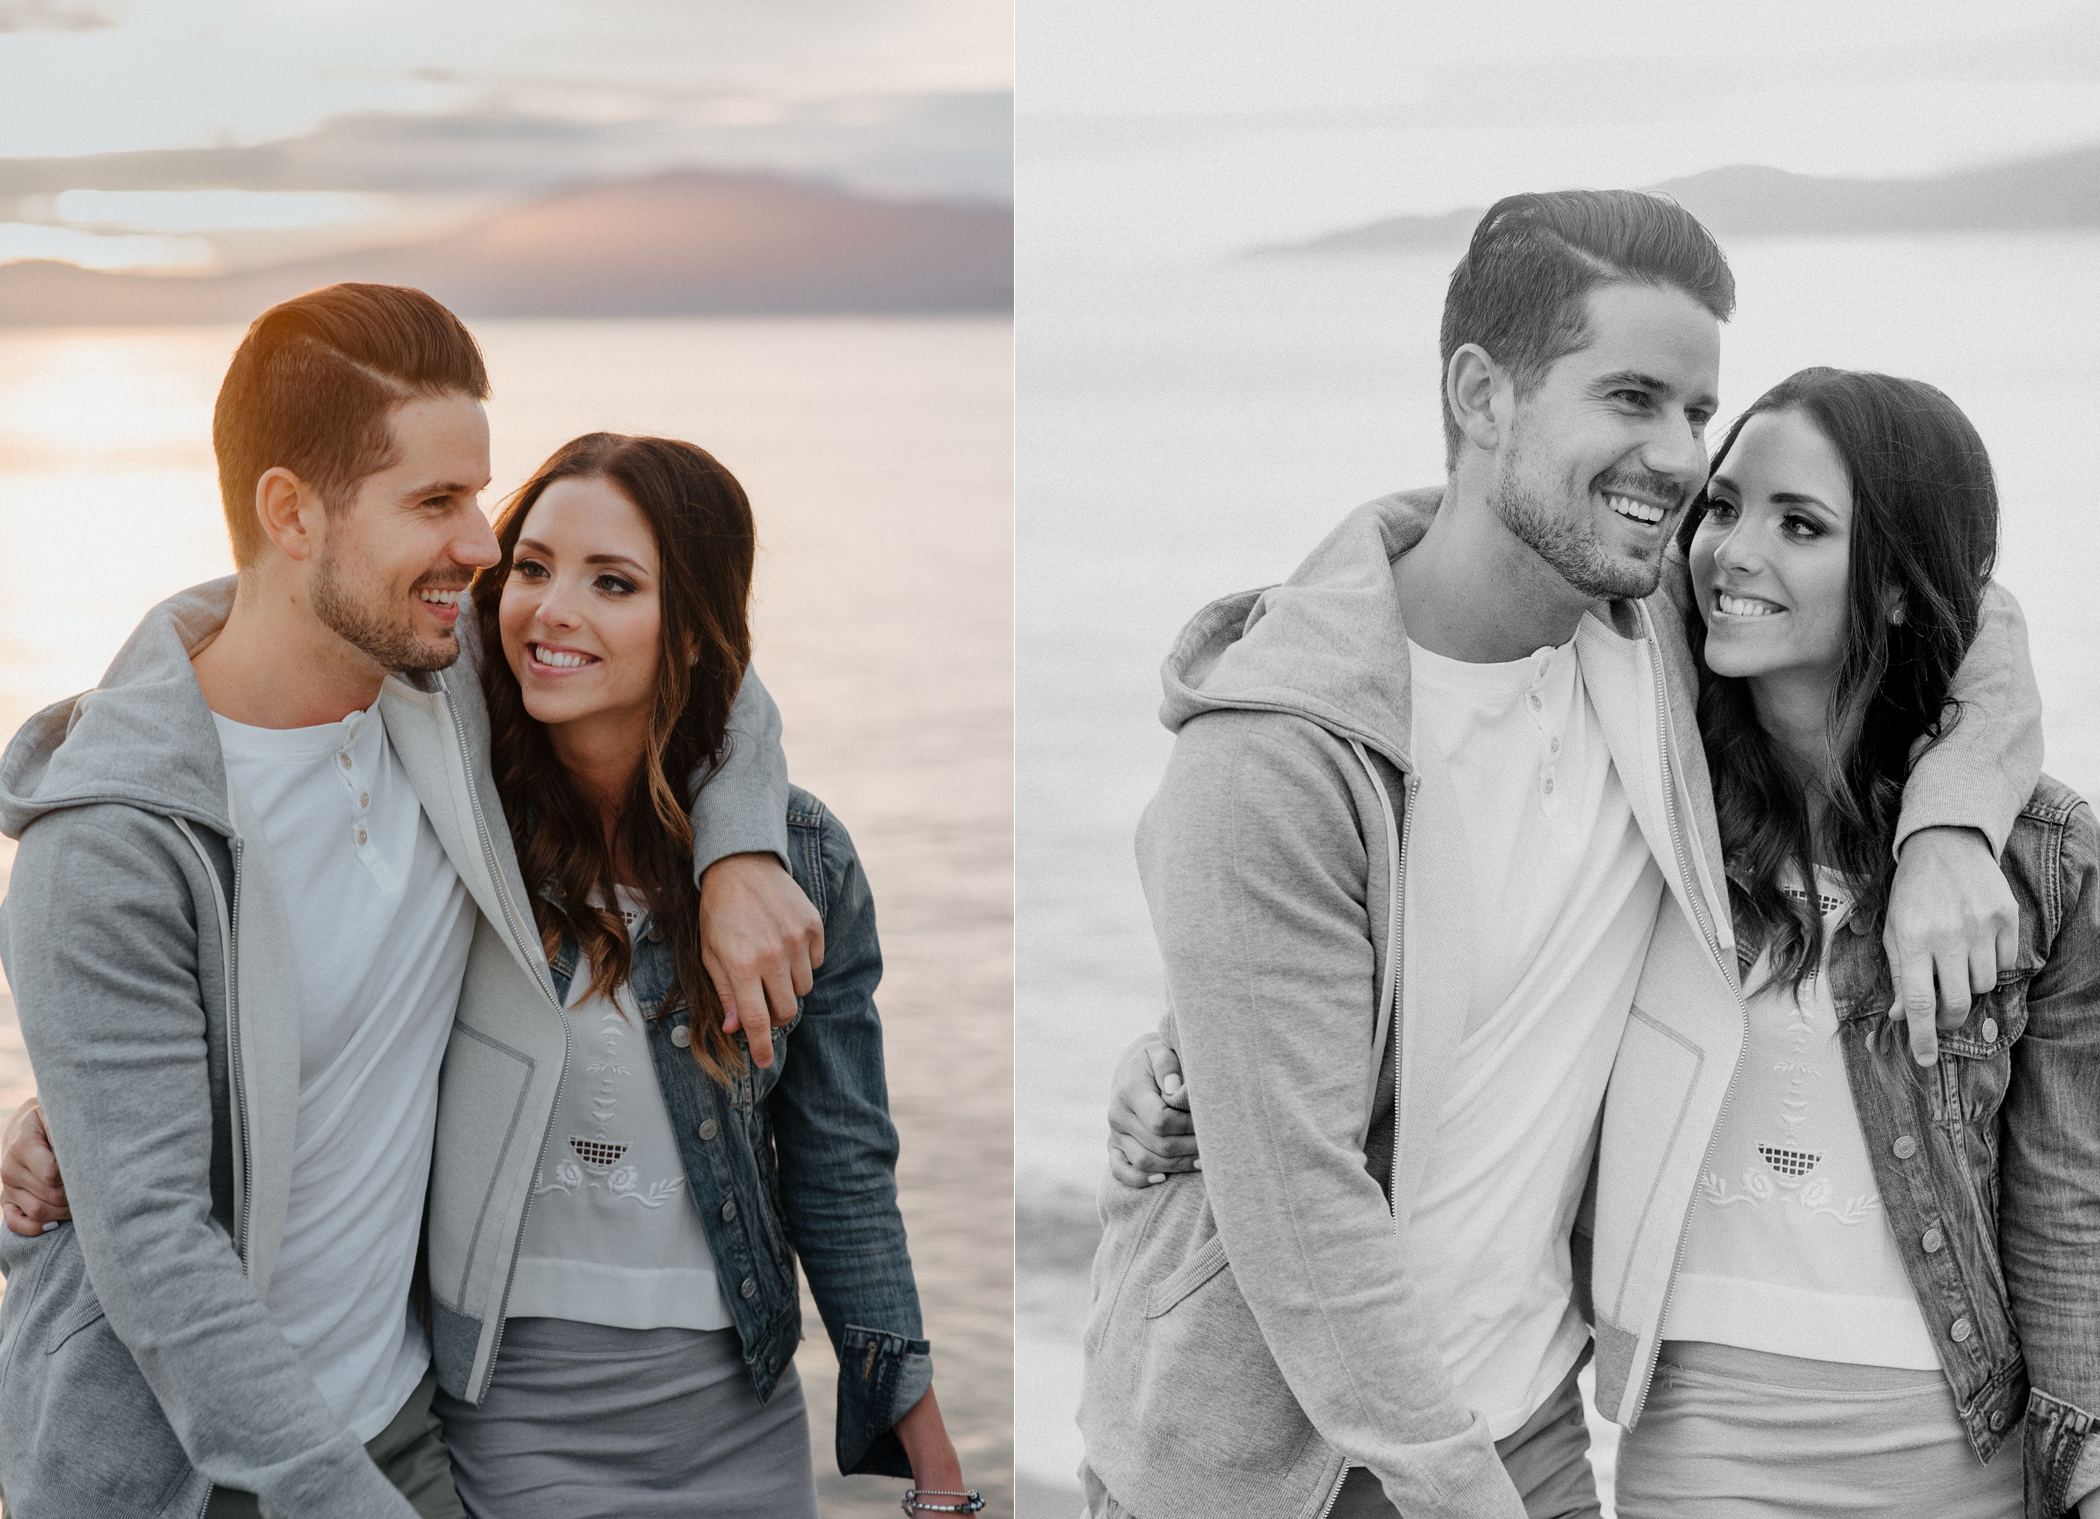 024-kaoverii-silva-LA-prewedding-vancouver-photography.png